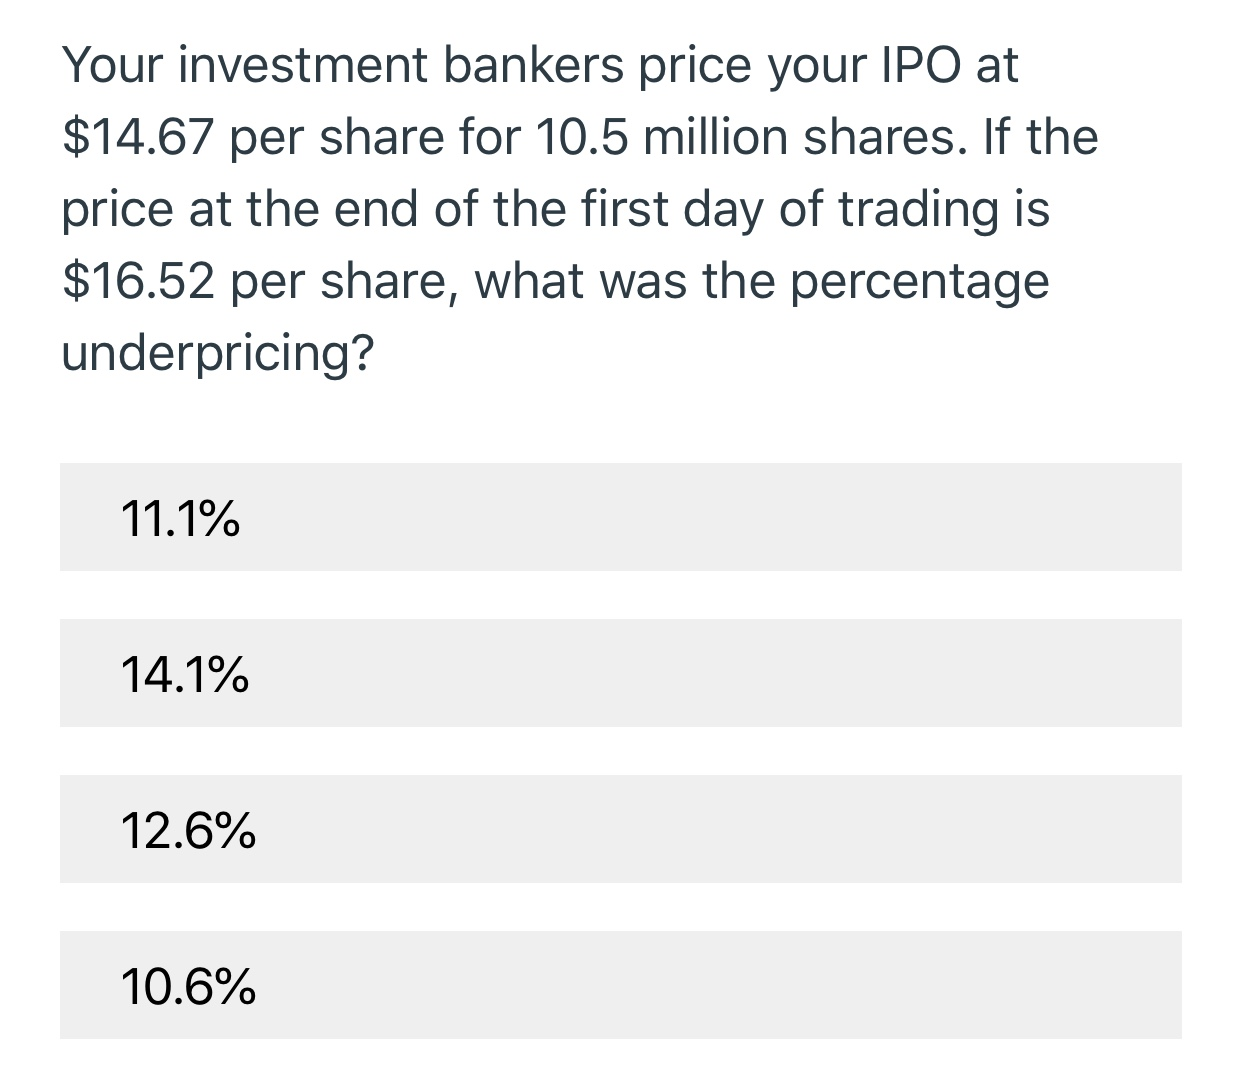 Your investment bankers price your IPO at $14.67 per share for 10.5 million shares. If the price at the end of the first day of trading is $16.52 per share, what was the percentage underpricing? 11.1% 14.1% 12.6% 10.6%